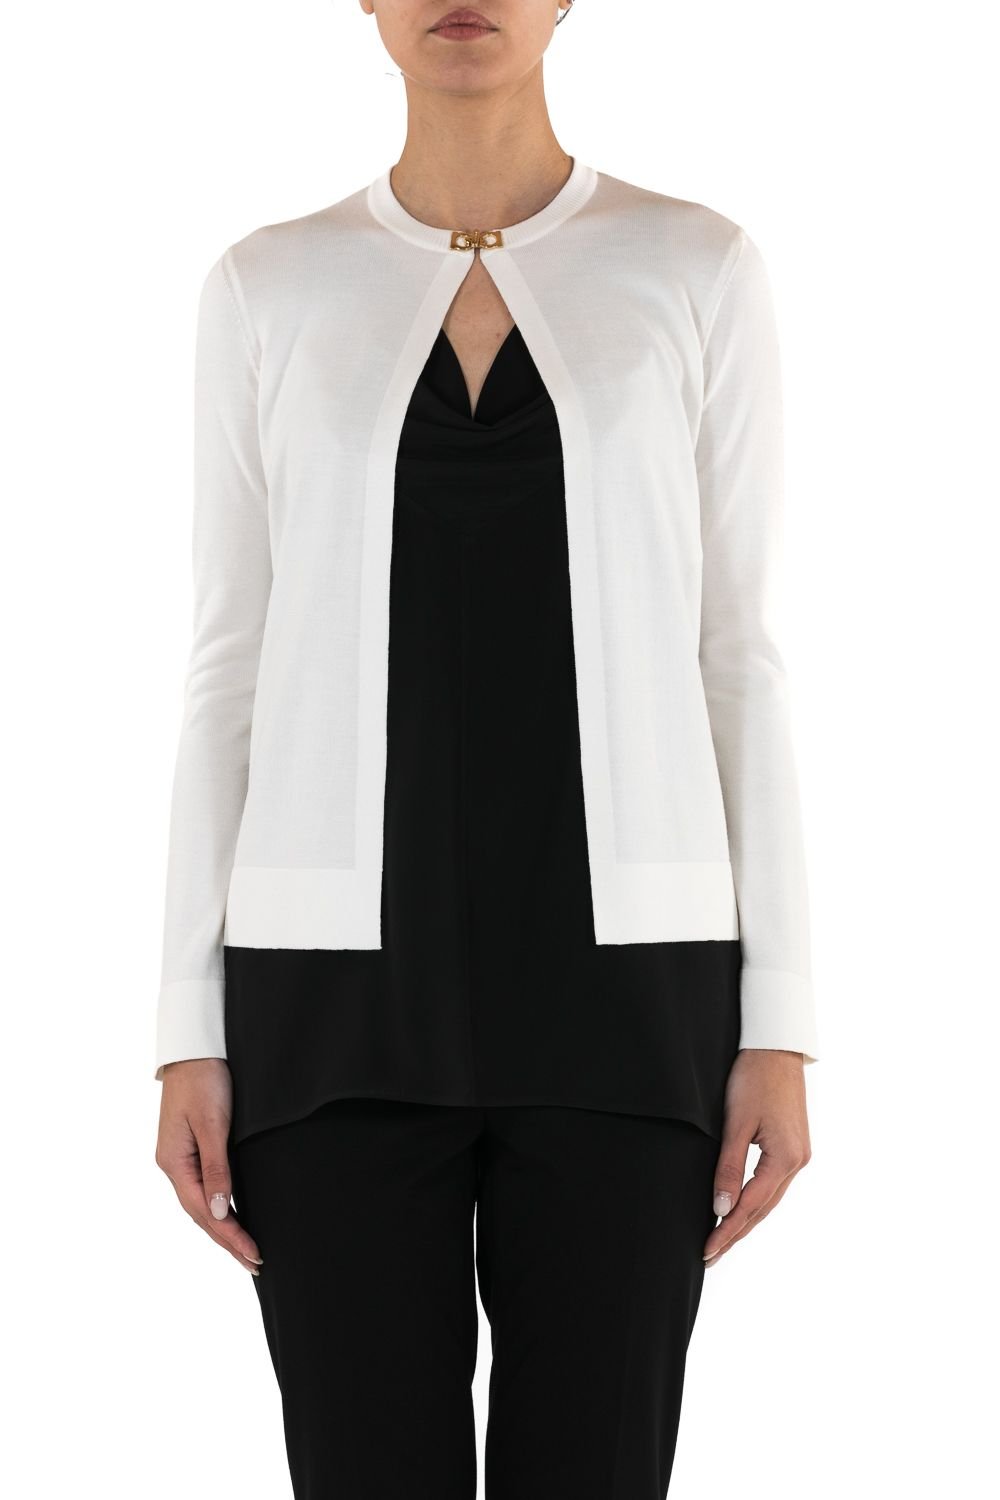 Salvatore Ferragamo White Cardigan